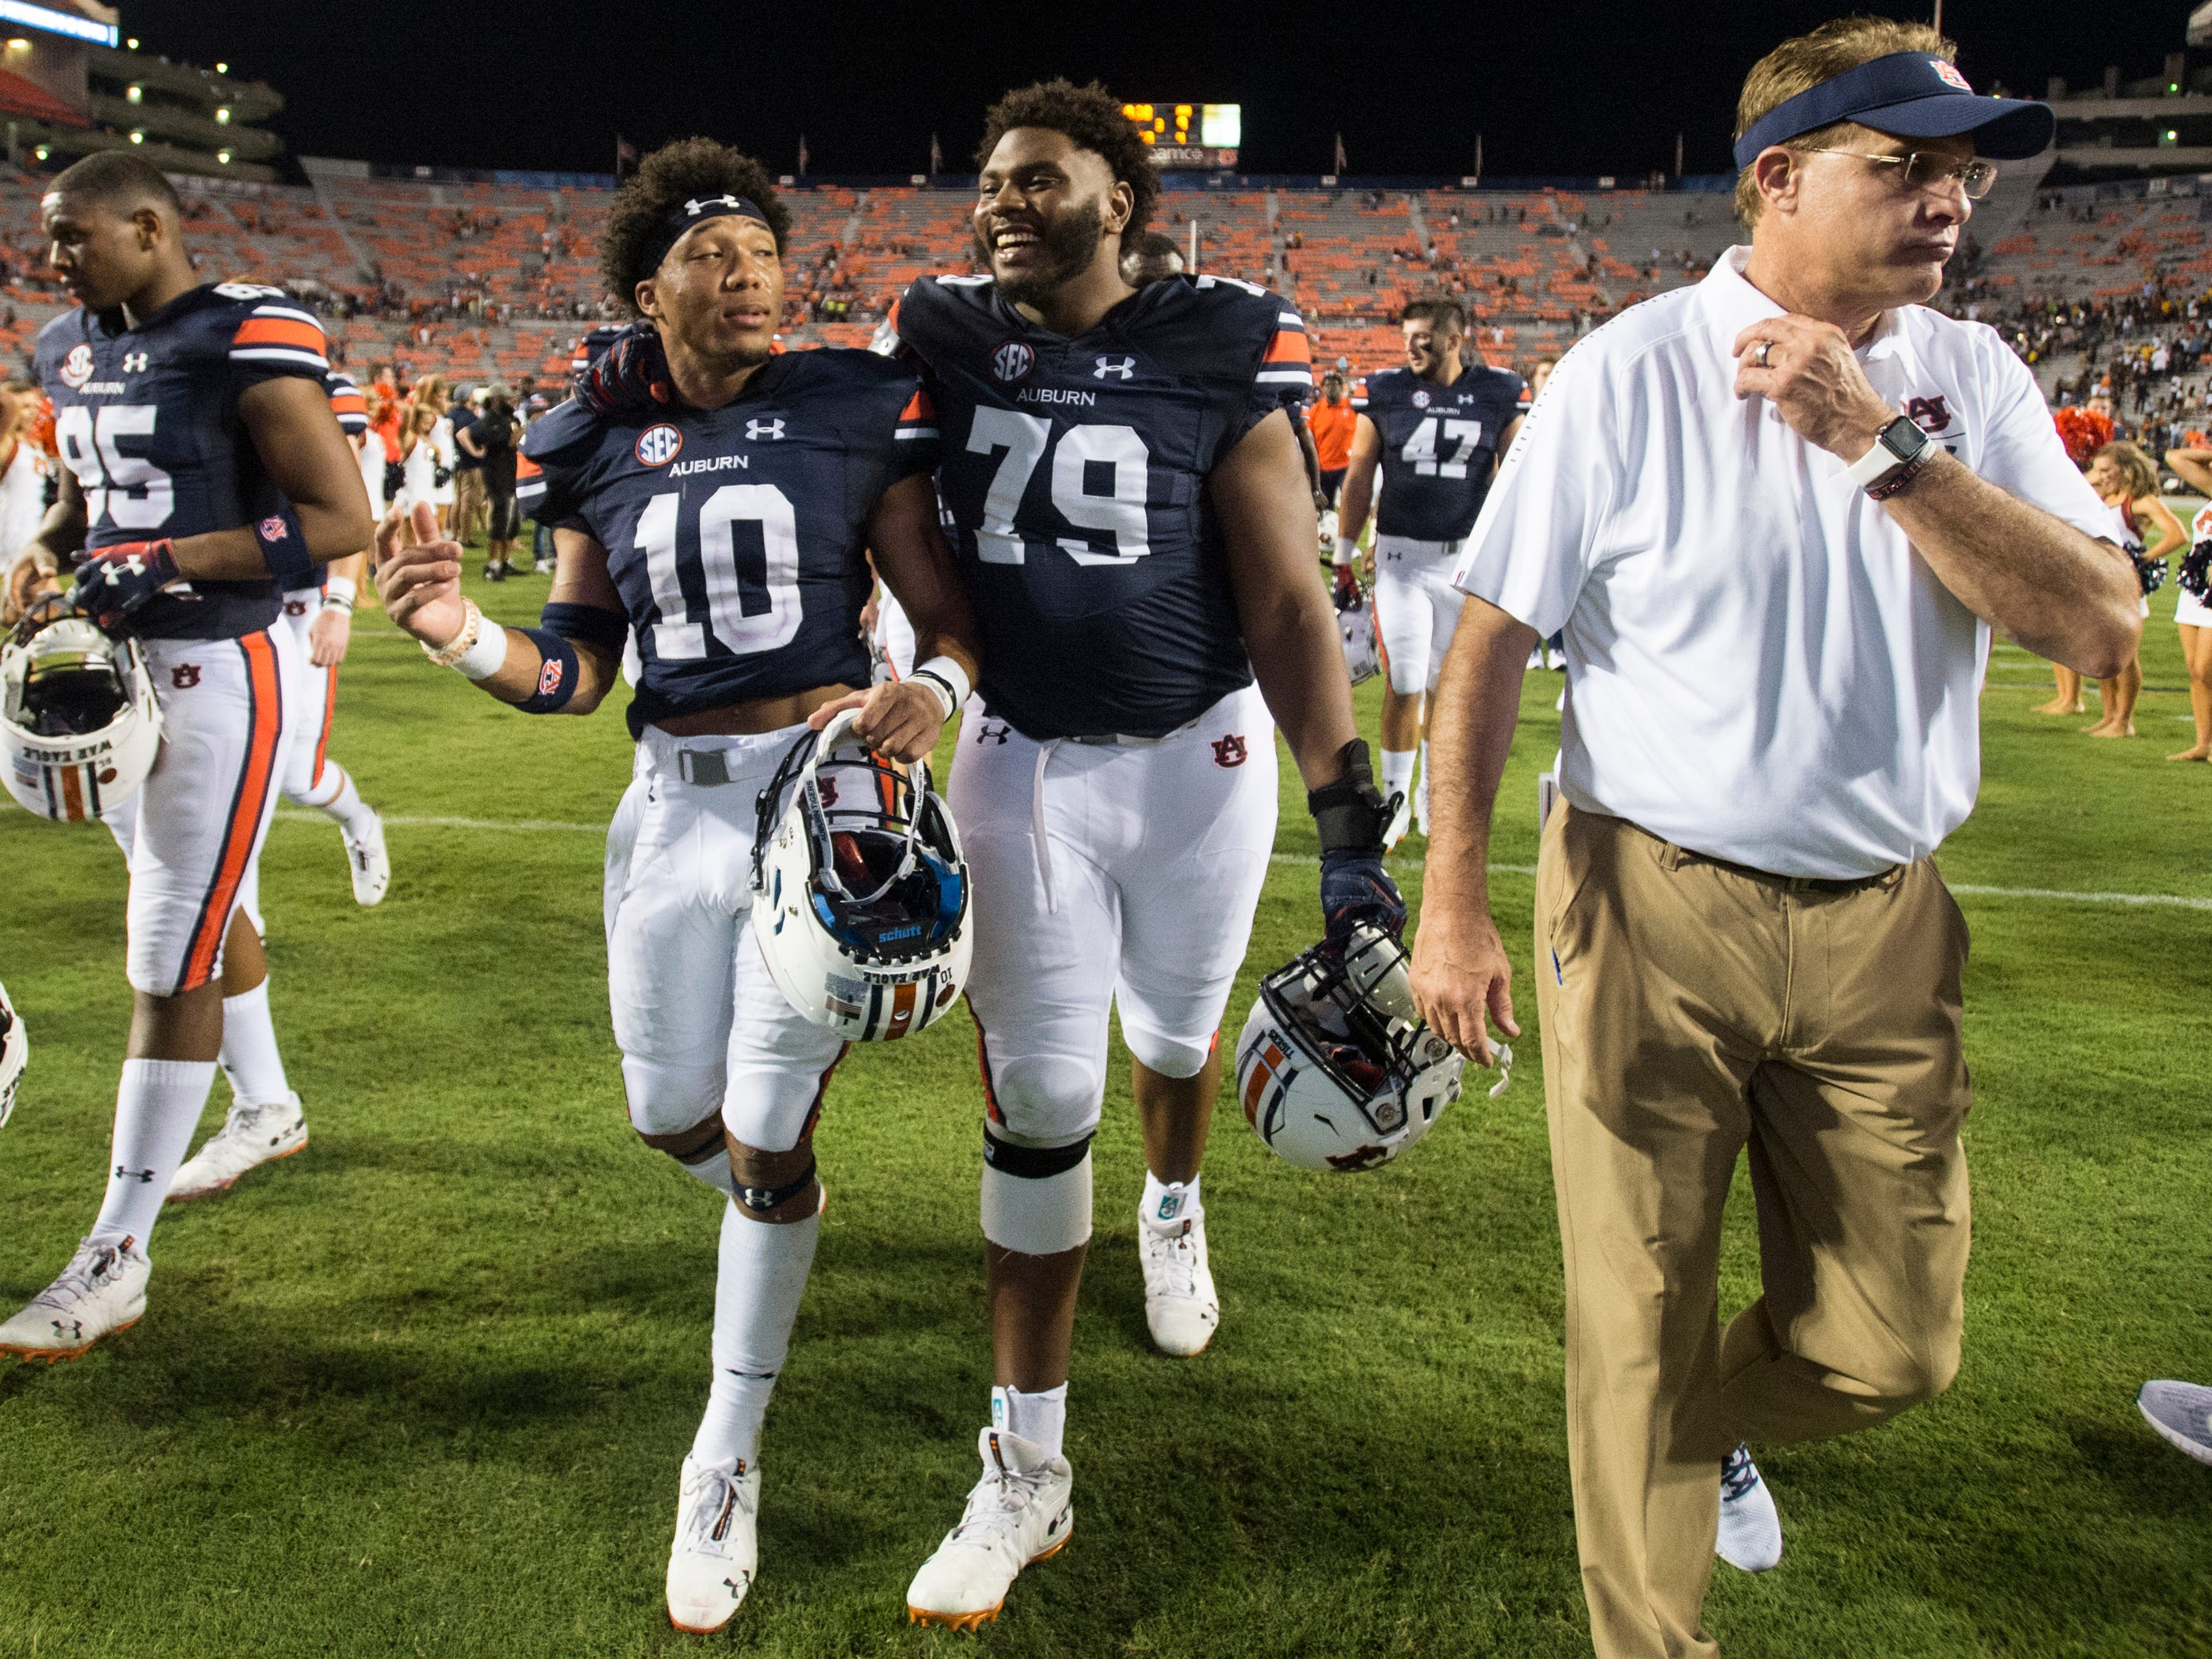 Auburn's Devan Barrett (10) and Andrew Williams (79) walk off the field with head coach Gus Malzahnat Jordan-Hare Stadium in Auburn, Ala., on Saturday, Sept. 8, 2018. Auburn defeated Alabama State 63-9.